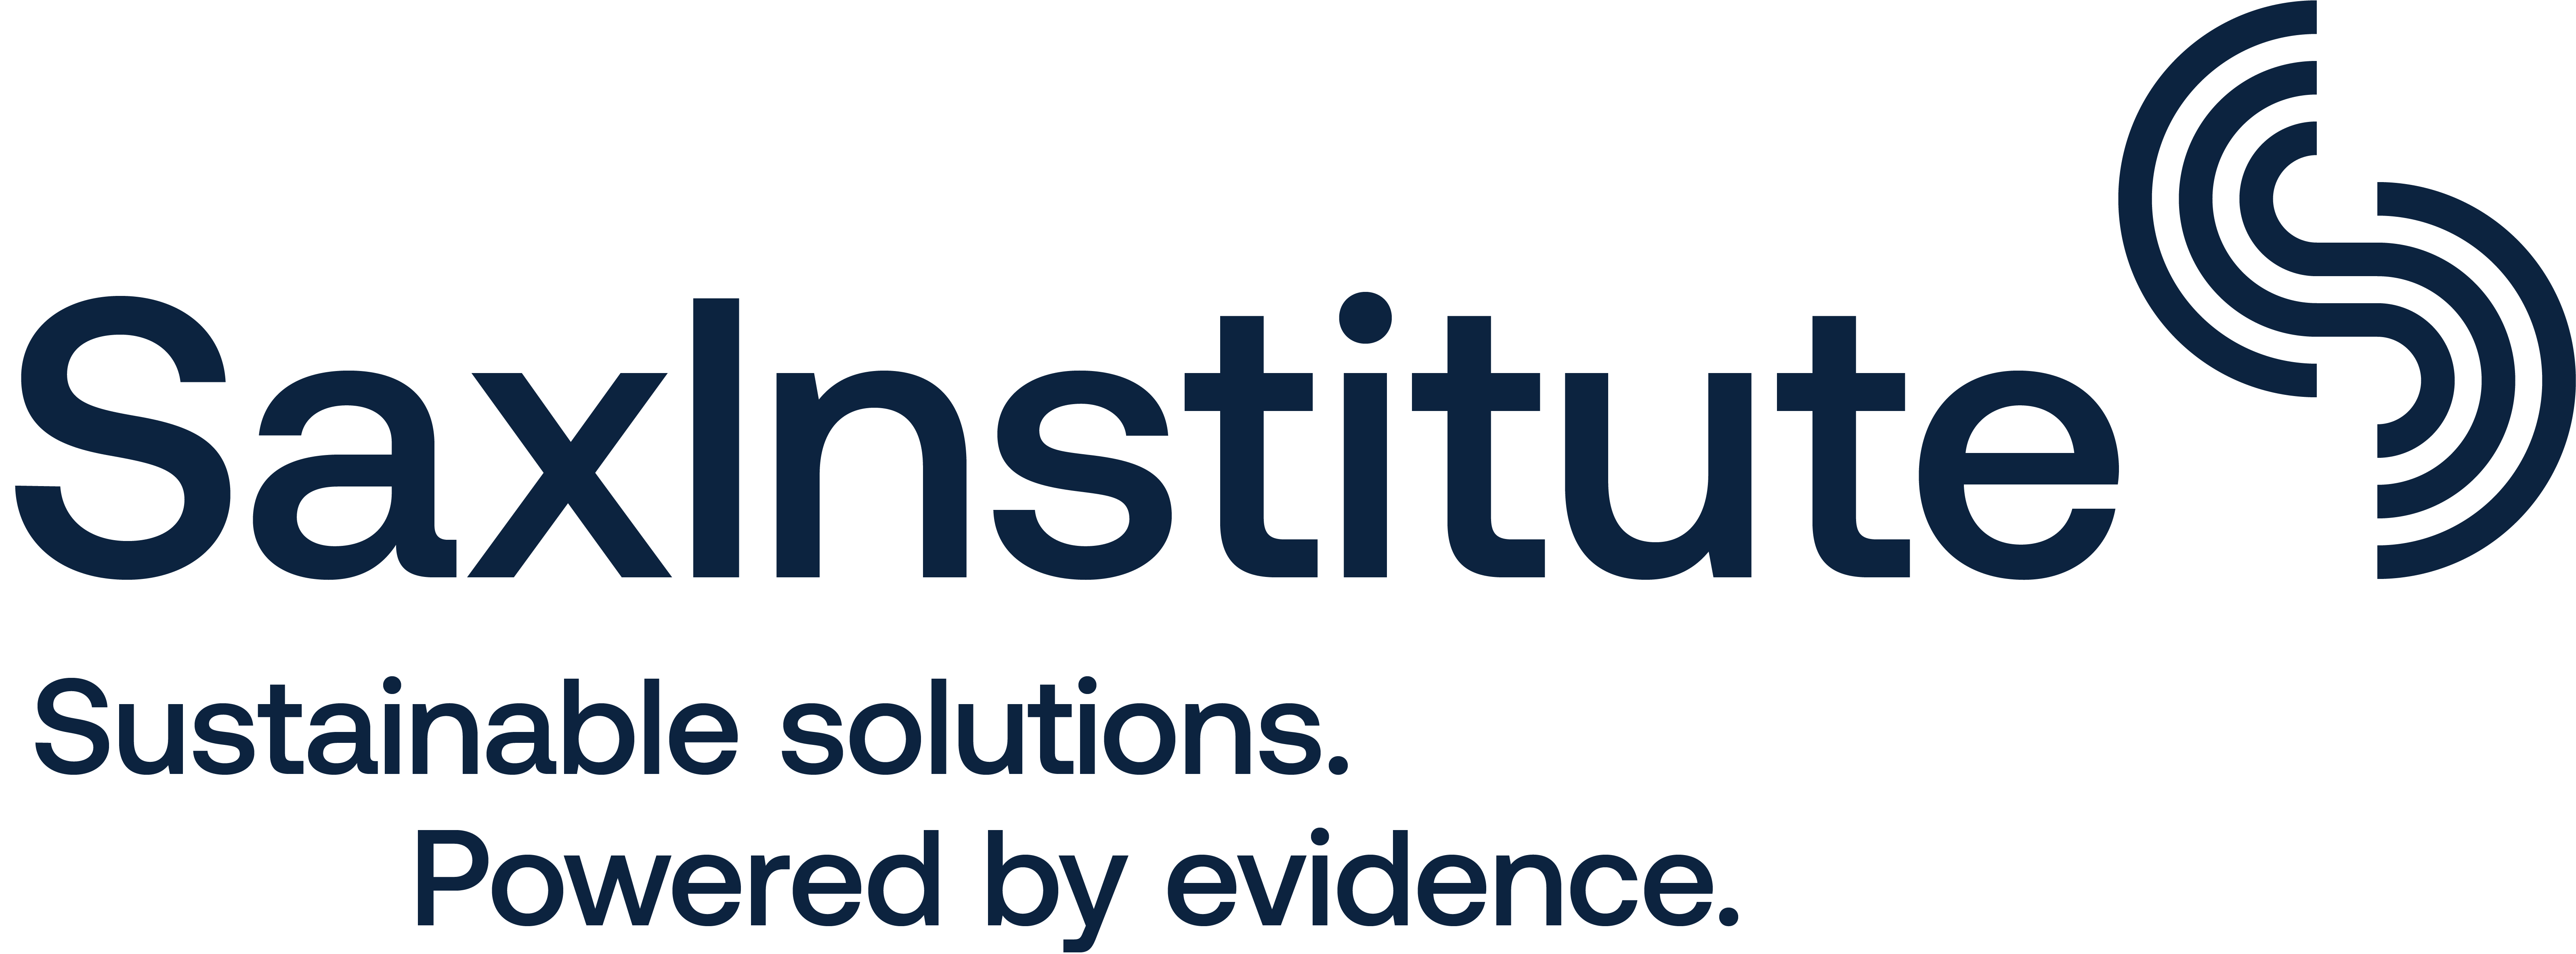 The Sax Institute Logo